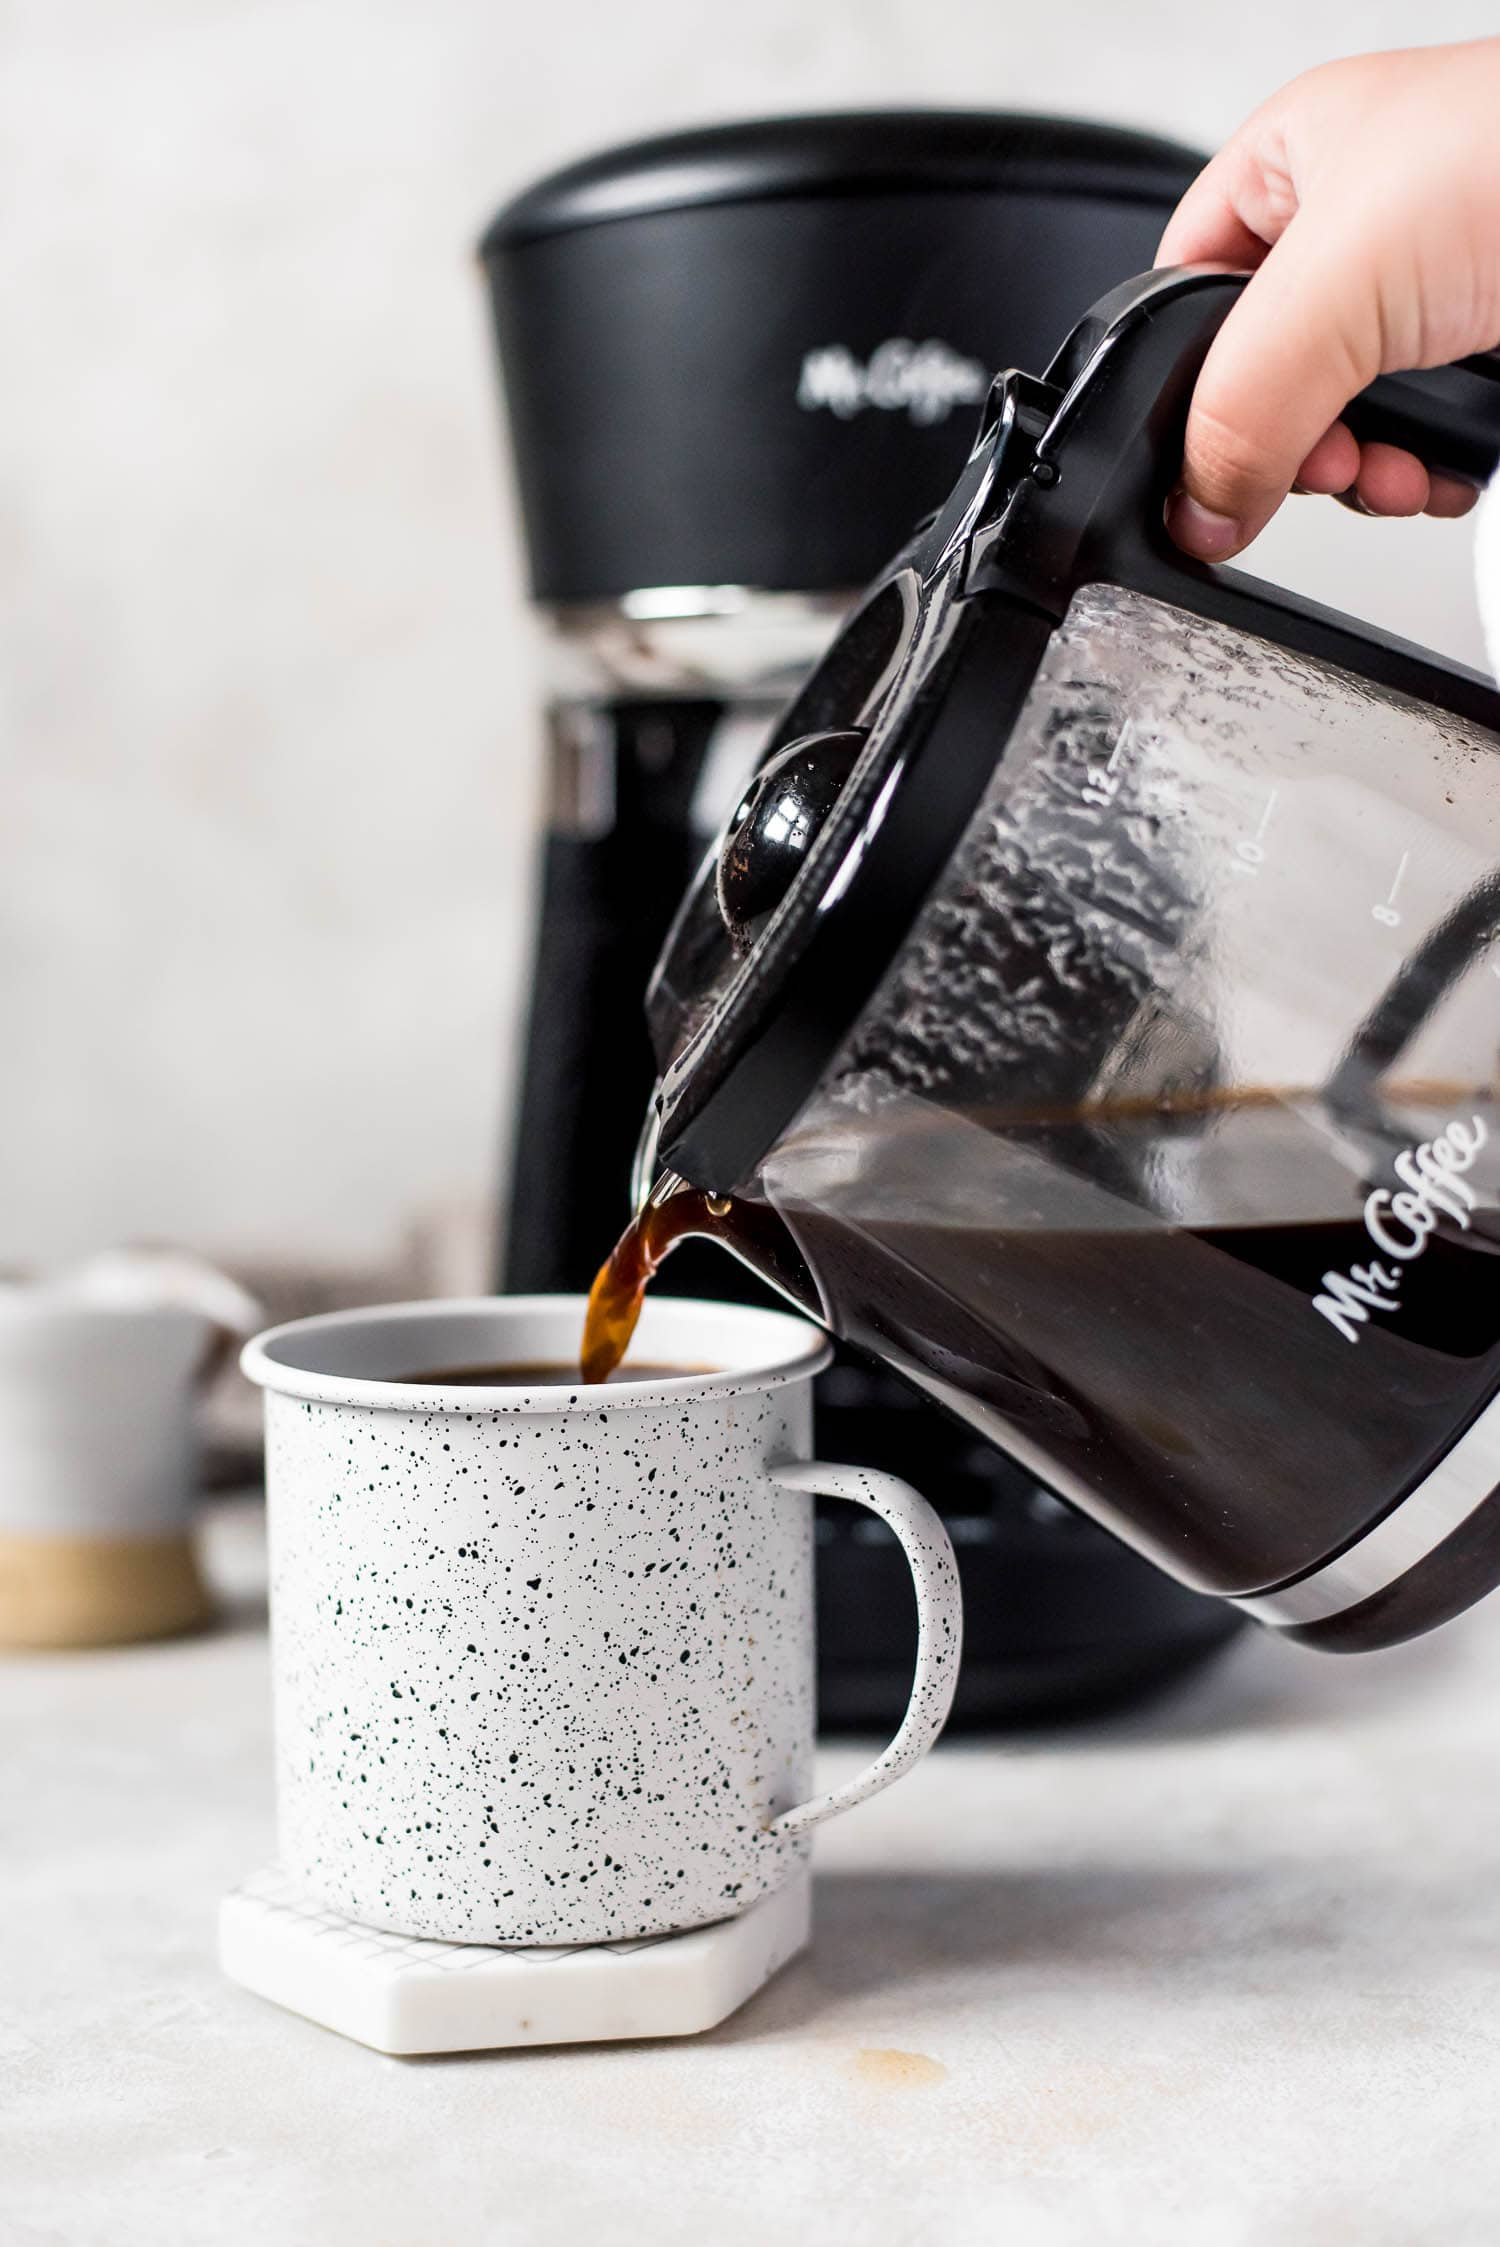 pouring coffee into mug